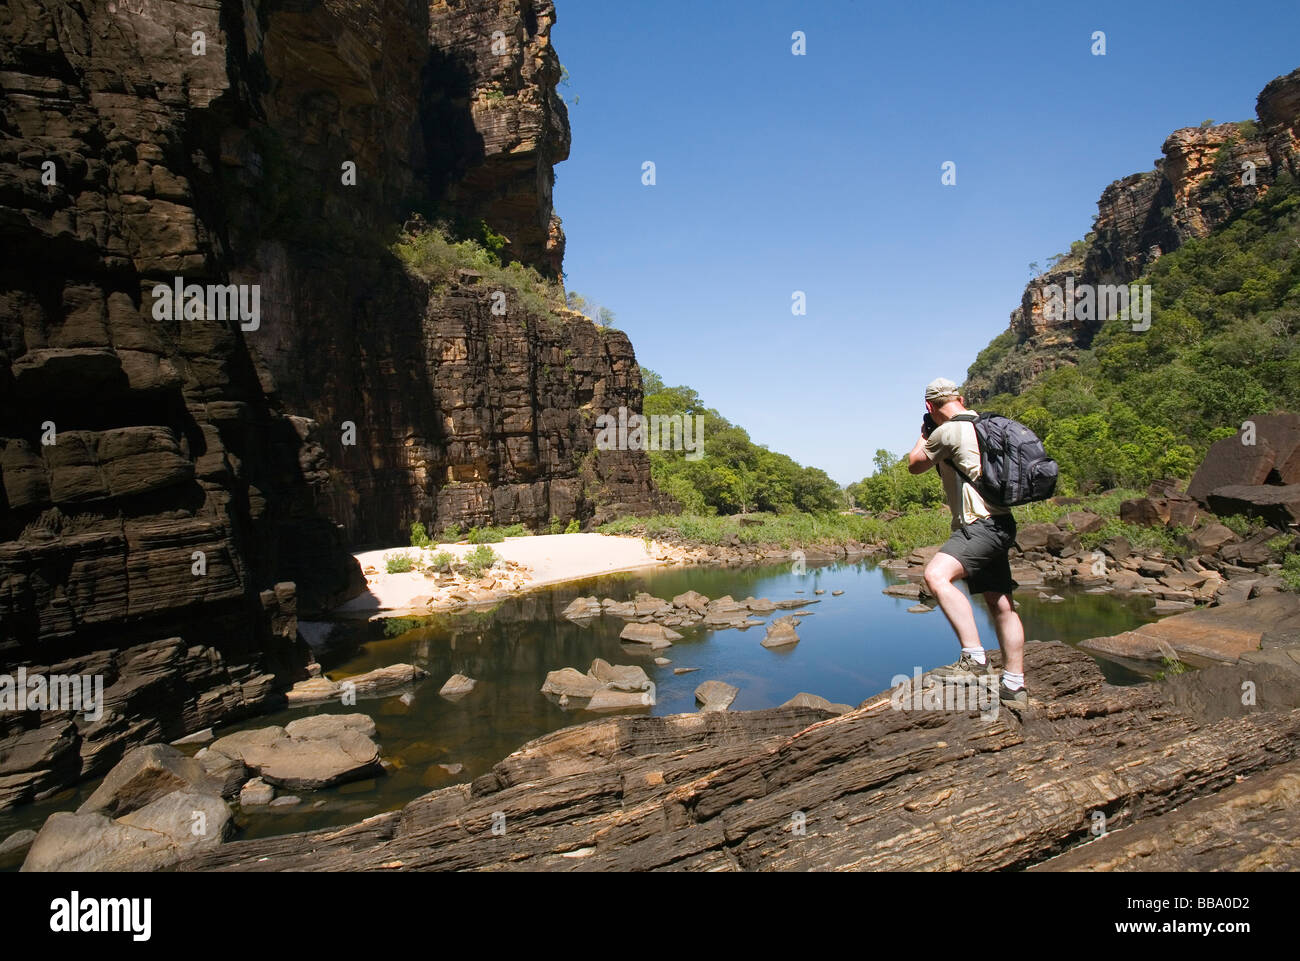 A tourist photographs Jim Jim Gorge.  Kakadu National Park, Northern Territory, AUSTRALIA - Stock Image